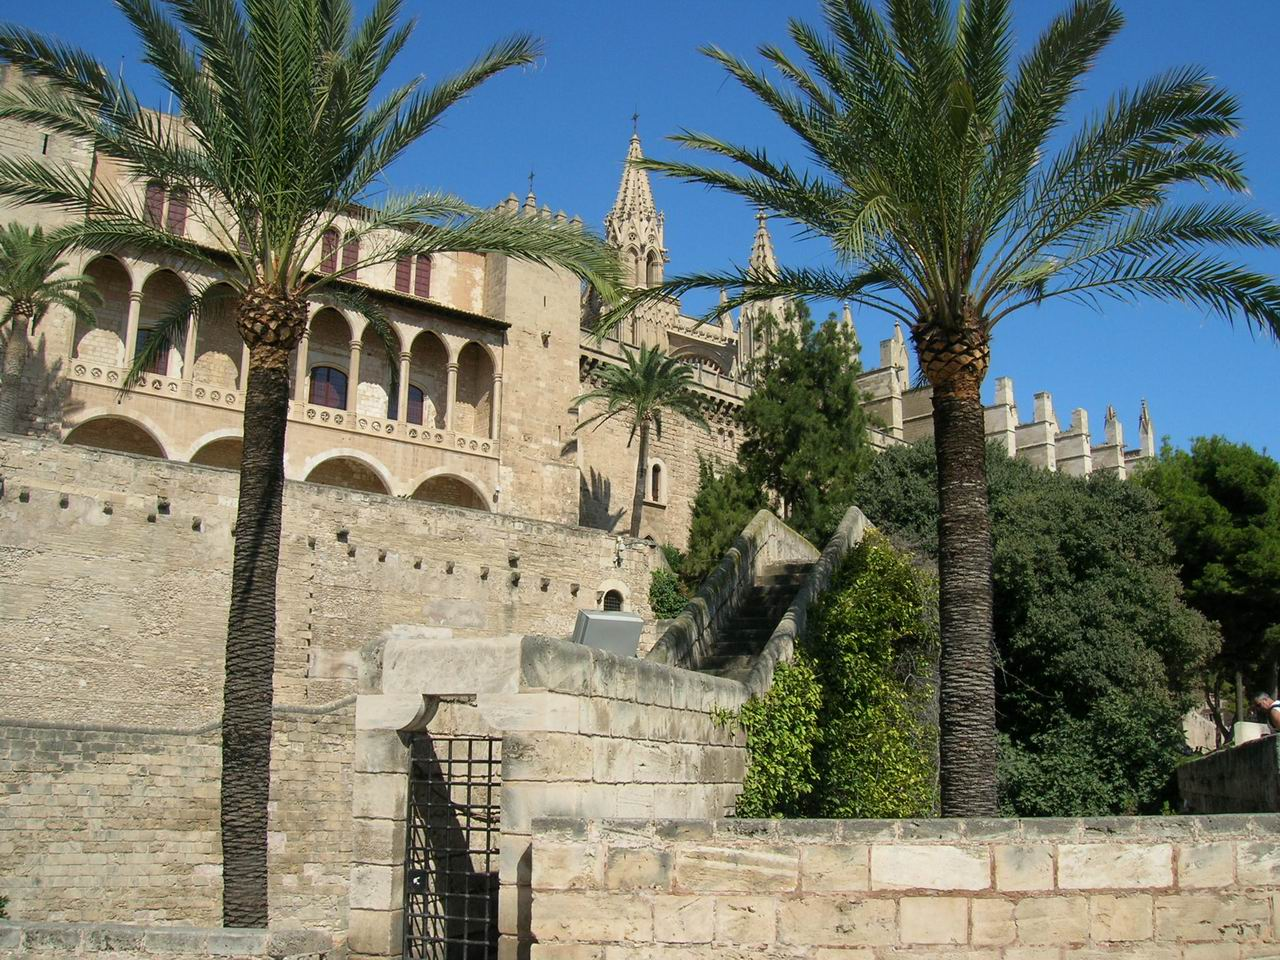 Palma de mallorca spain wallpaper 582420 fanpop for Tintoreria palma de mallorca